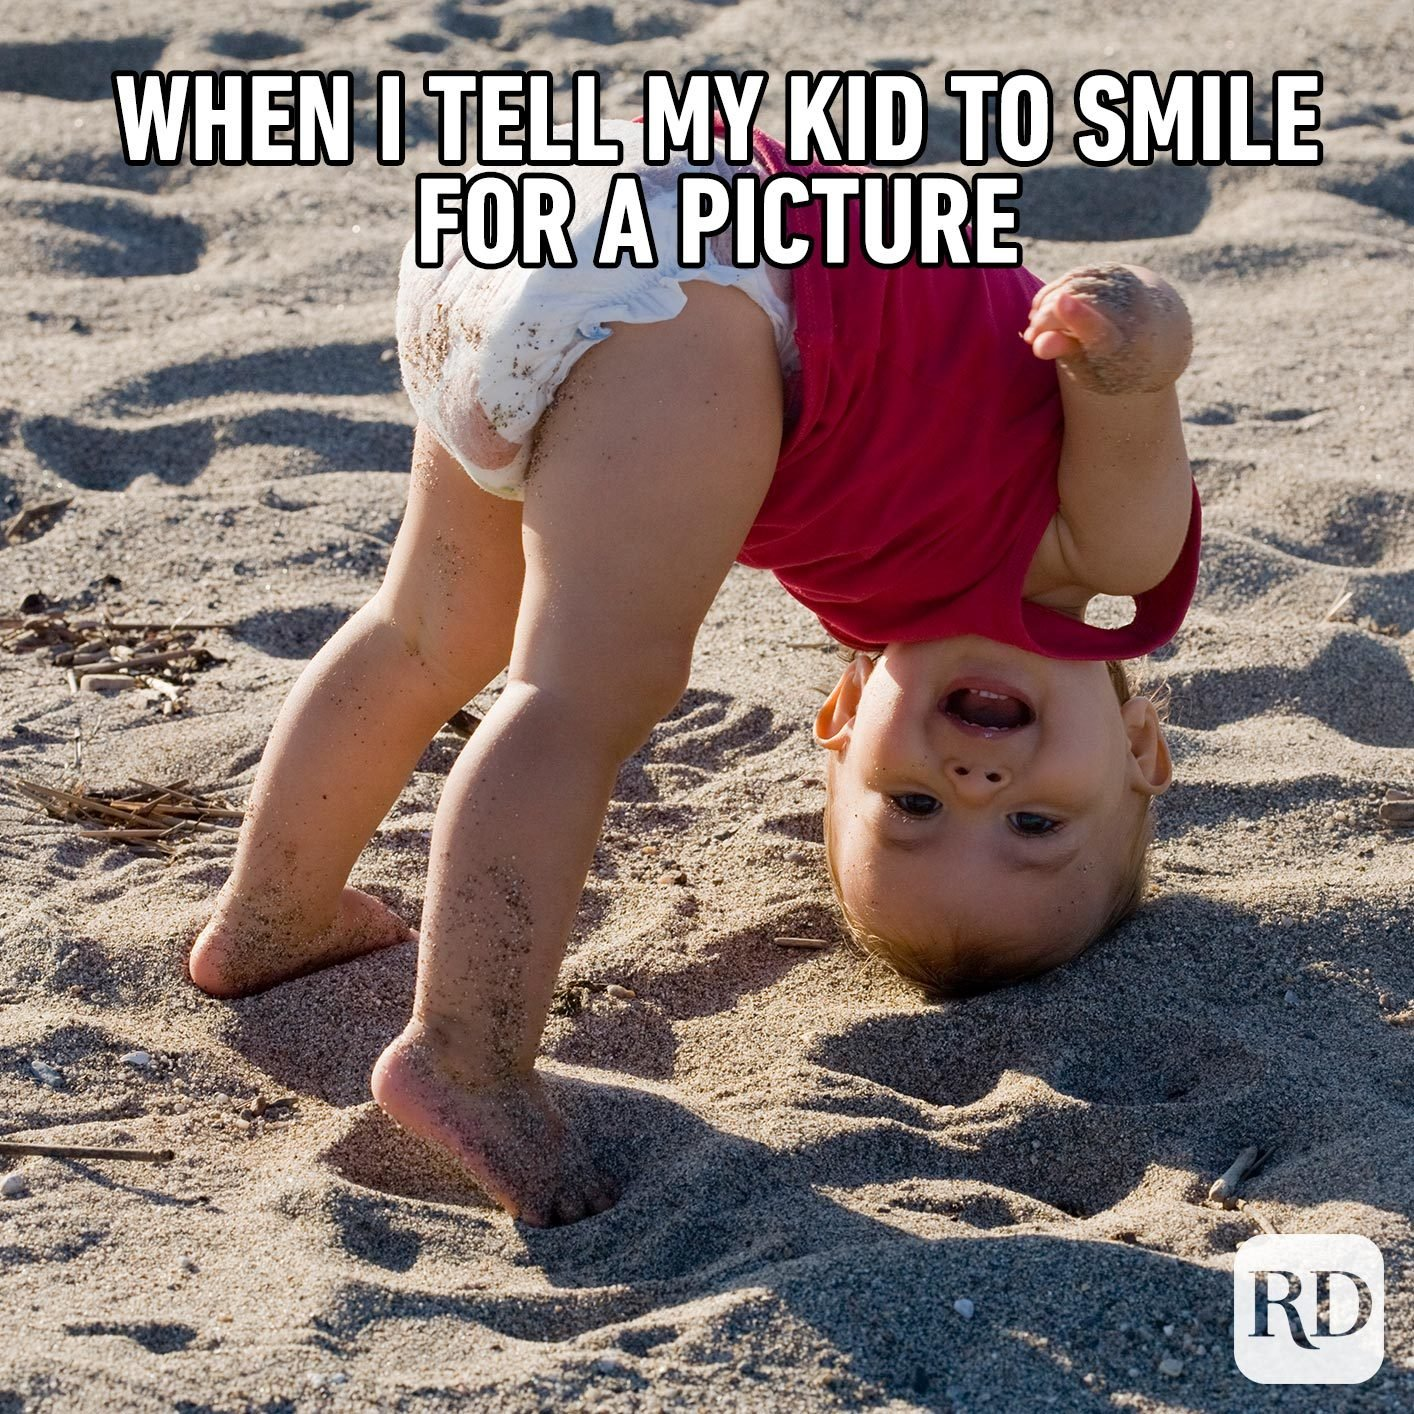 Child upside down laughing. MEME TEXT: When I tell my kid to smile for a picture